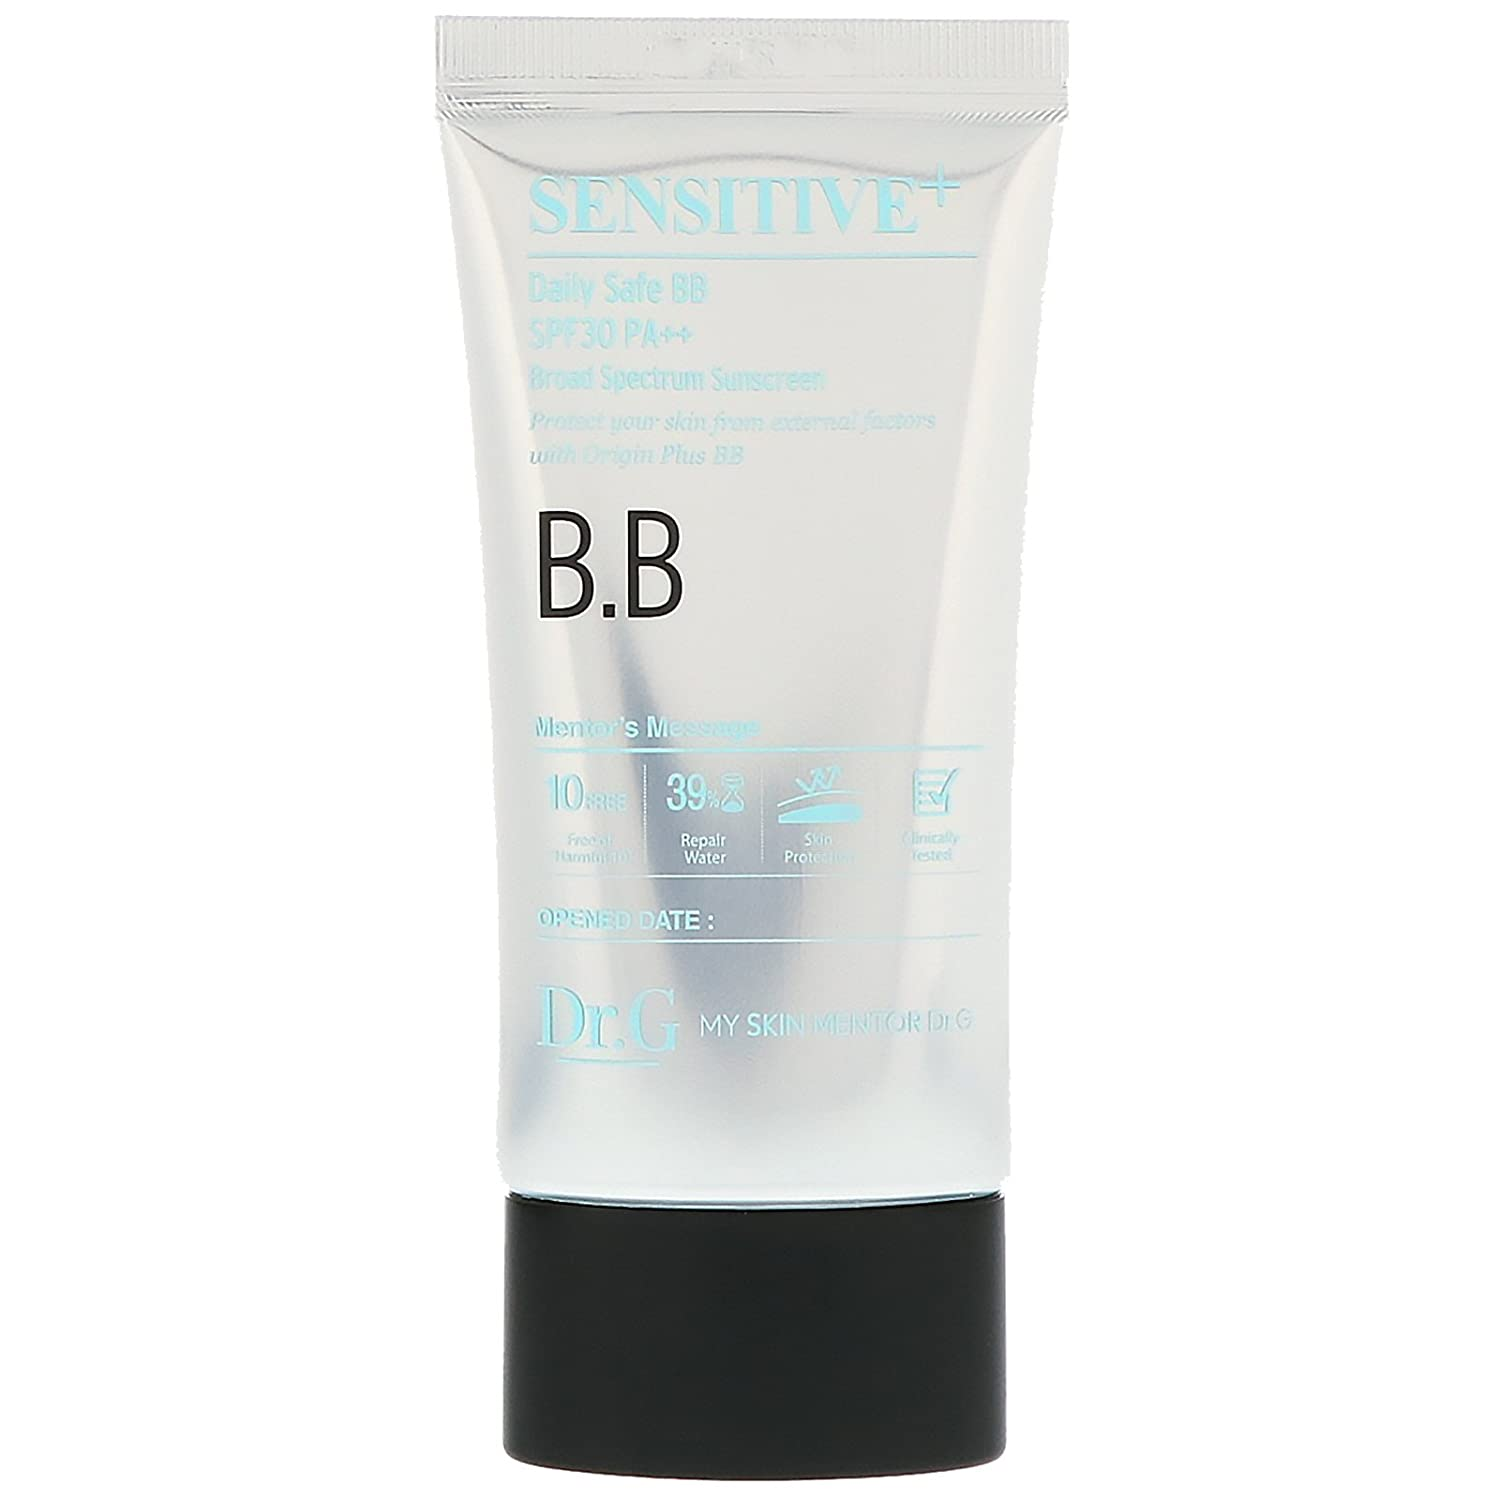 Dr.G Gowoonsesang Daily Safe BB SPF30 PA++ (45ml) by Dr.G Gowoonsesang